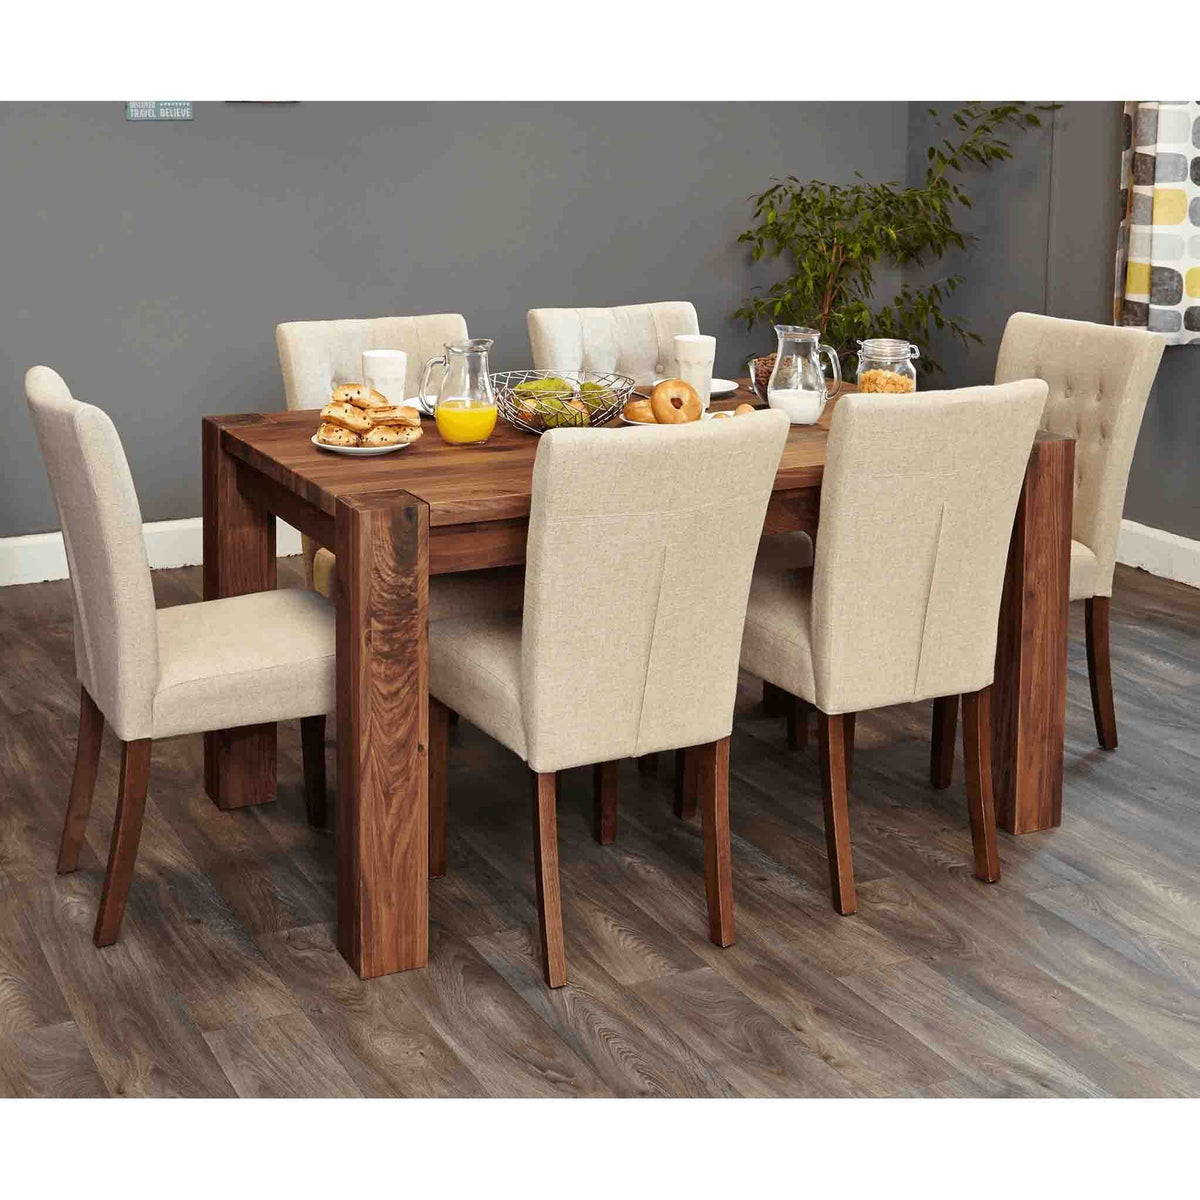 The Salem Walnut Solid Hardwood Dining Table from Roseland Furniture